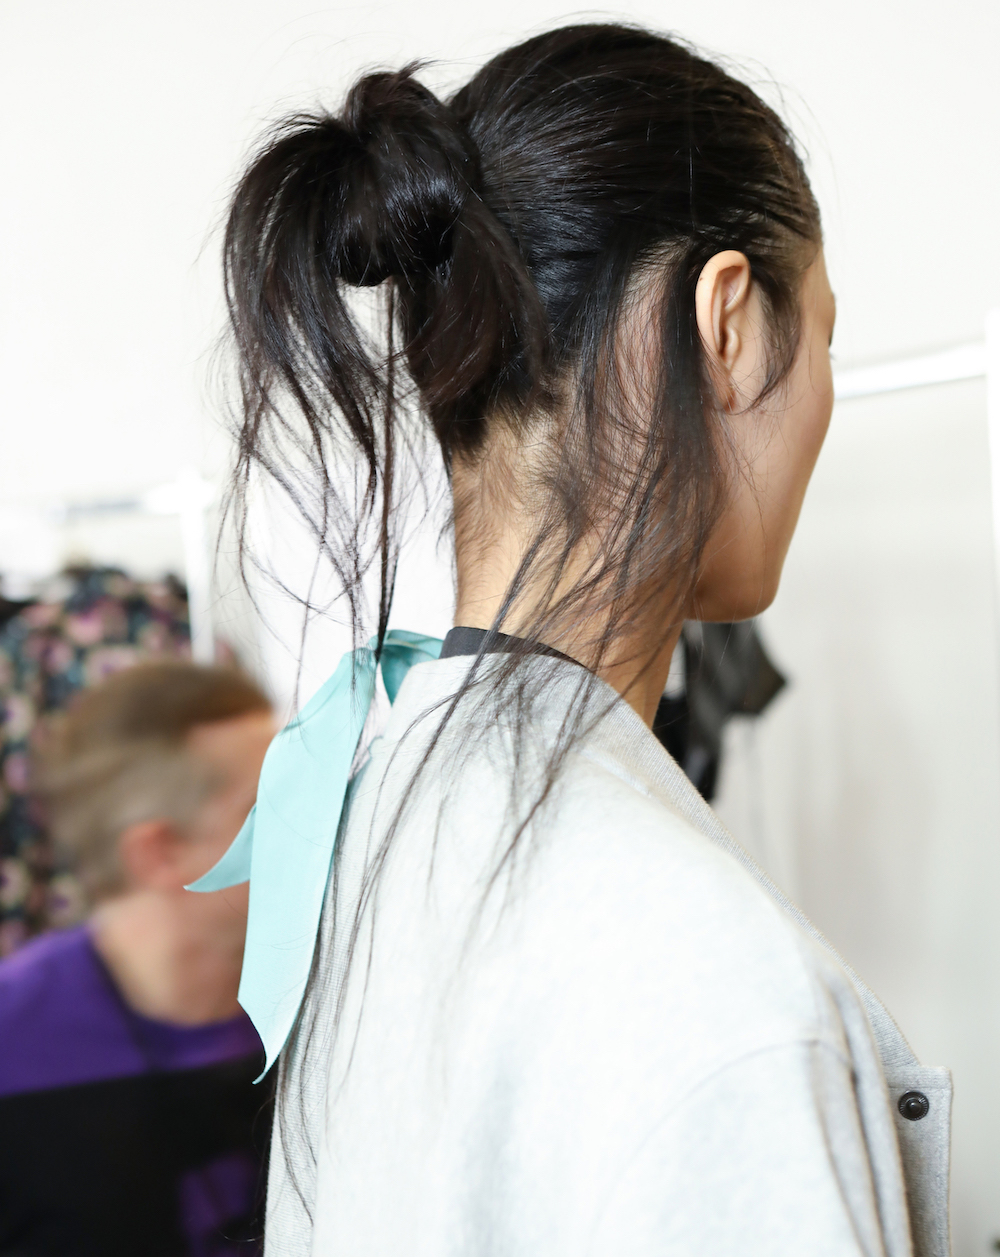 Model backstage at olivier theyskens SS19